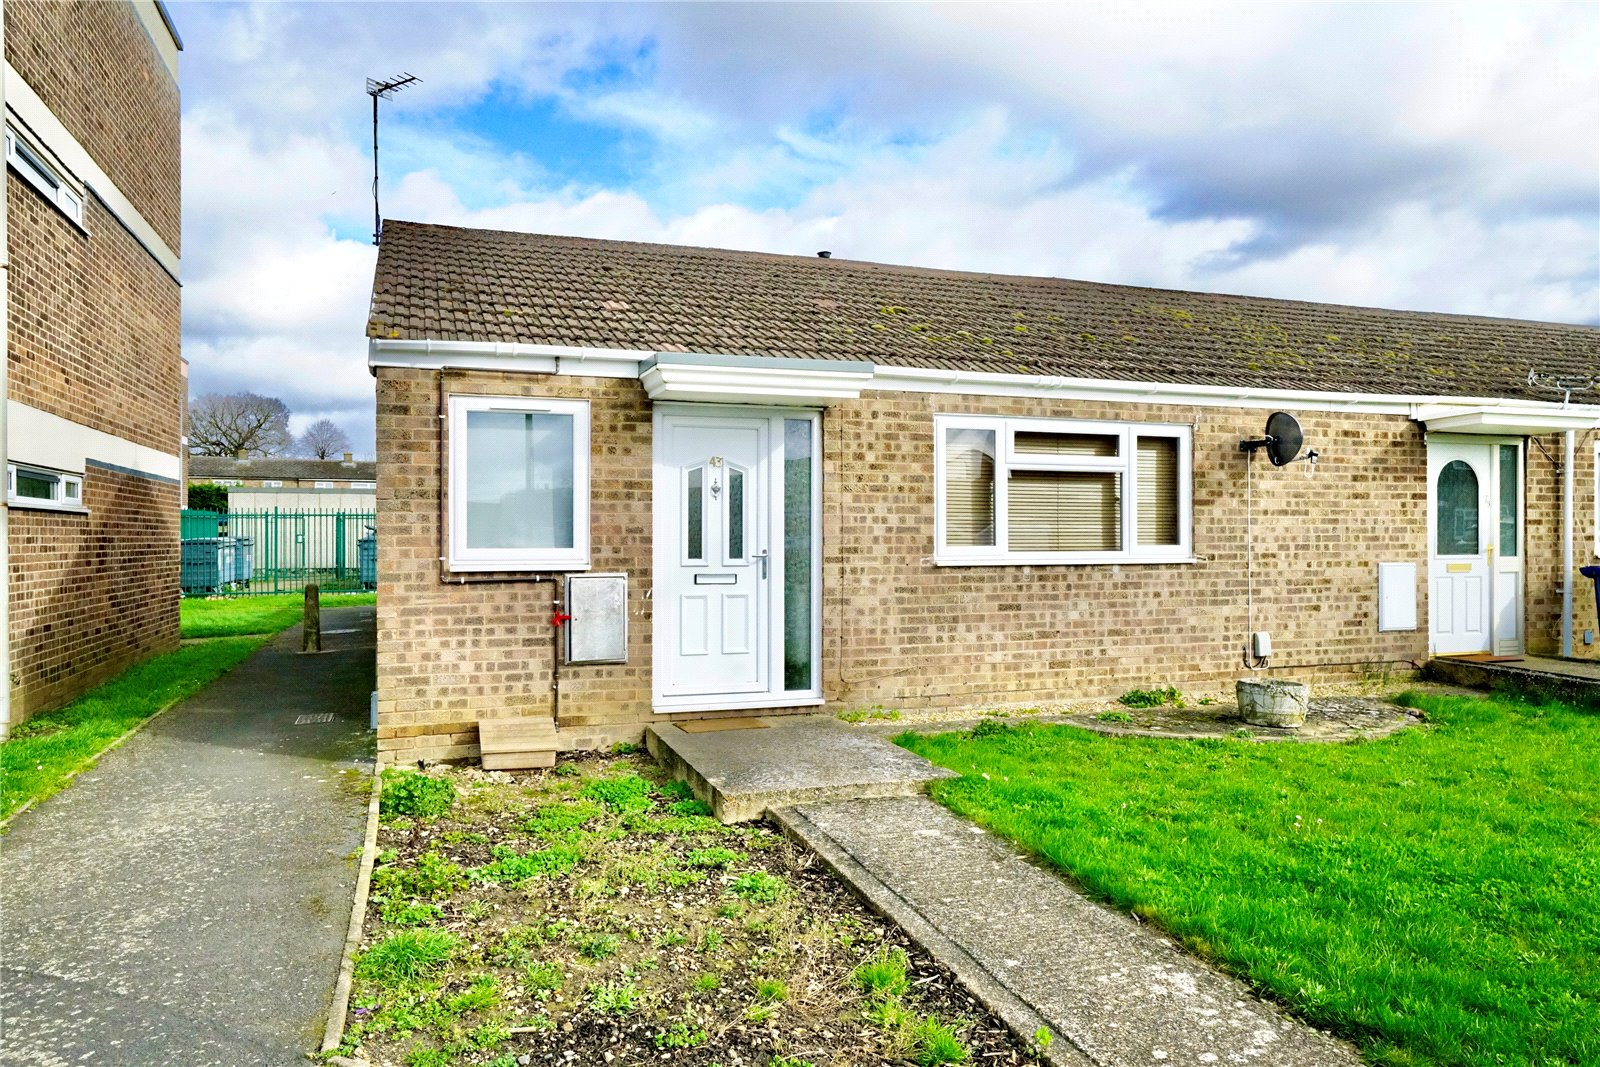 2 bed bungalow for sale in St Neots, PE19